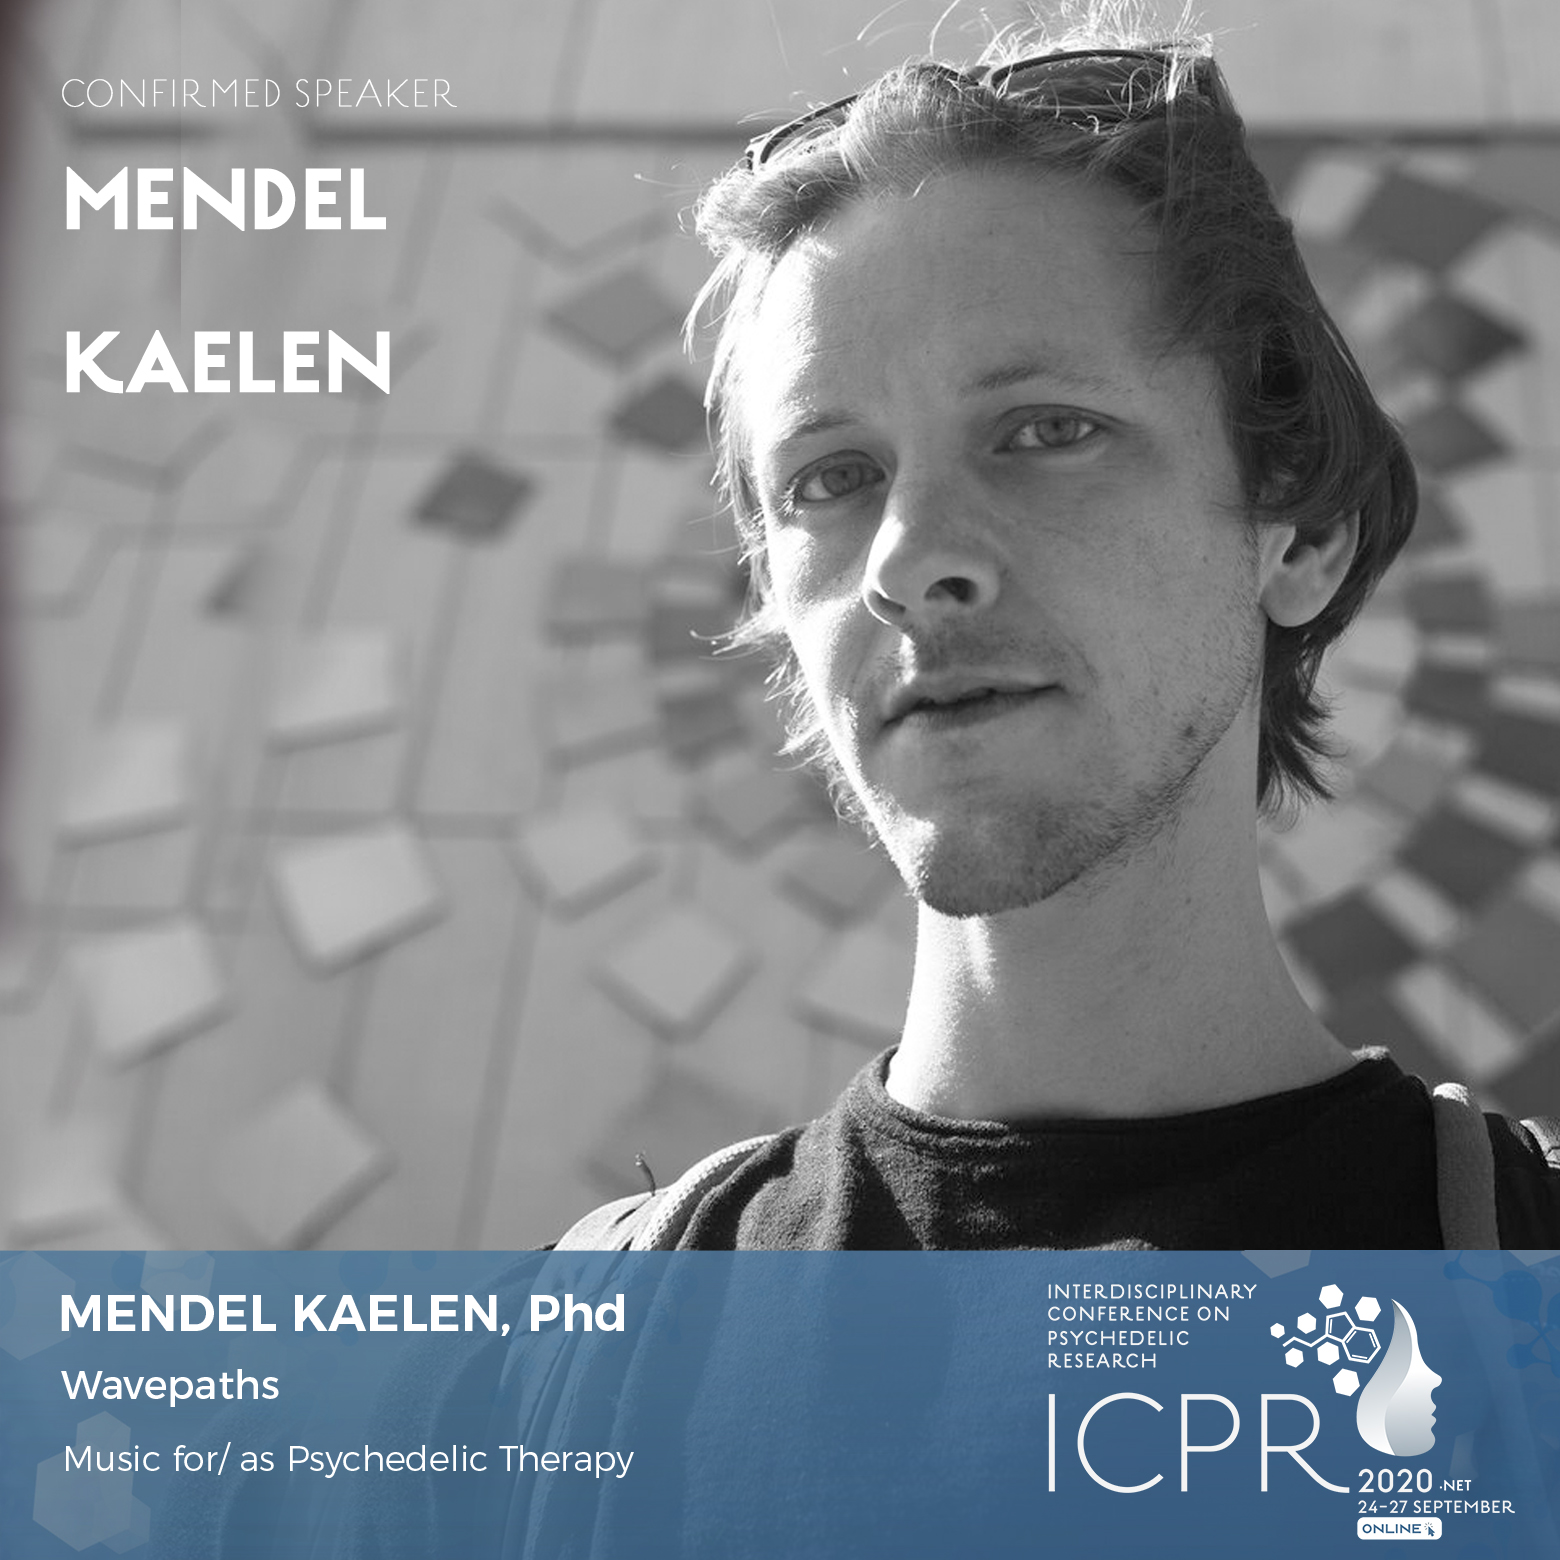 Psychedelic technologies and music therapy: An interview with Mendel Kaelen